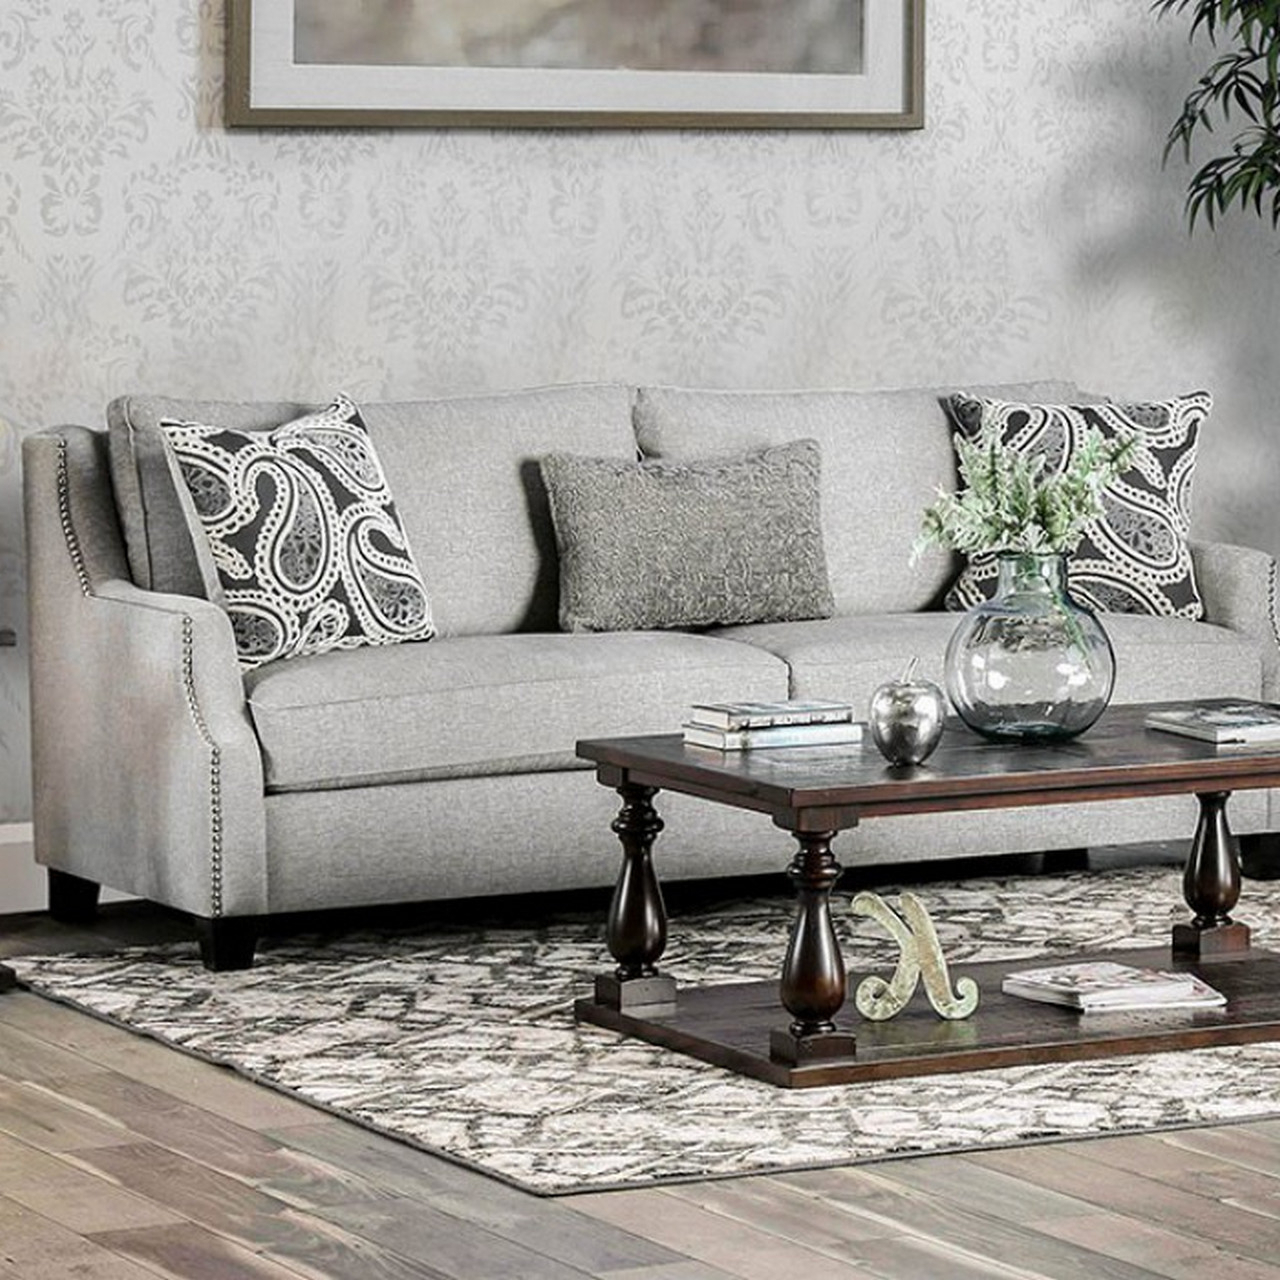 Chantal Contemporary Grey Fabric Sloped Arms Sofa With Regarding Famous Radcliff Nailhead Trim Sectional Sofas Gray (View 22 of 25)